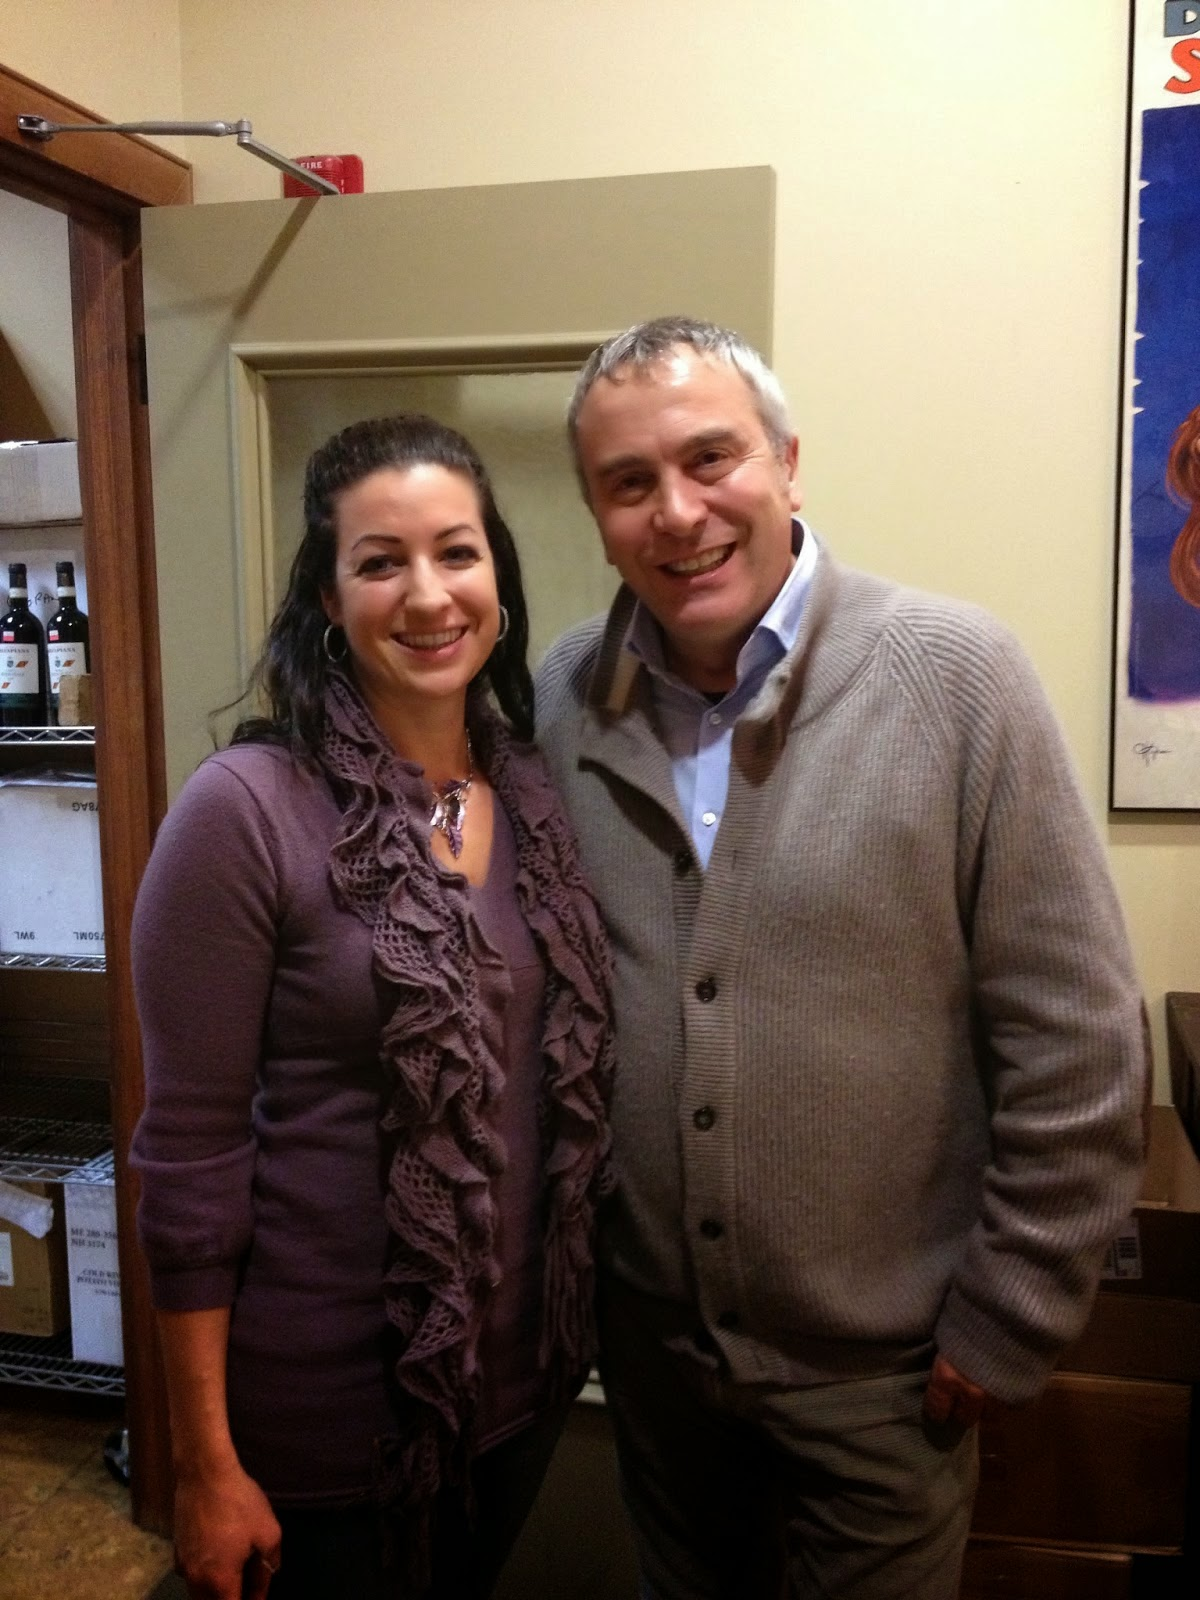 Giuseppe Nicolis of Nicolis winery